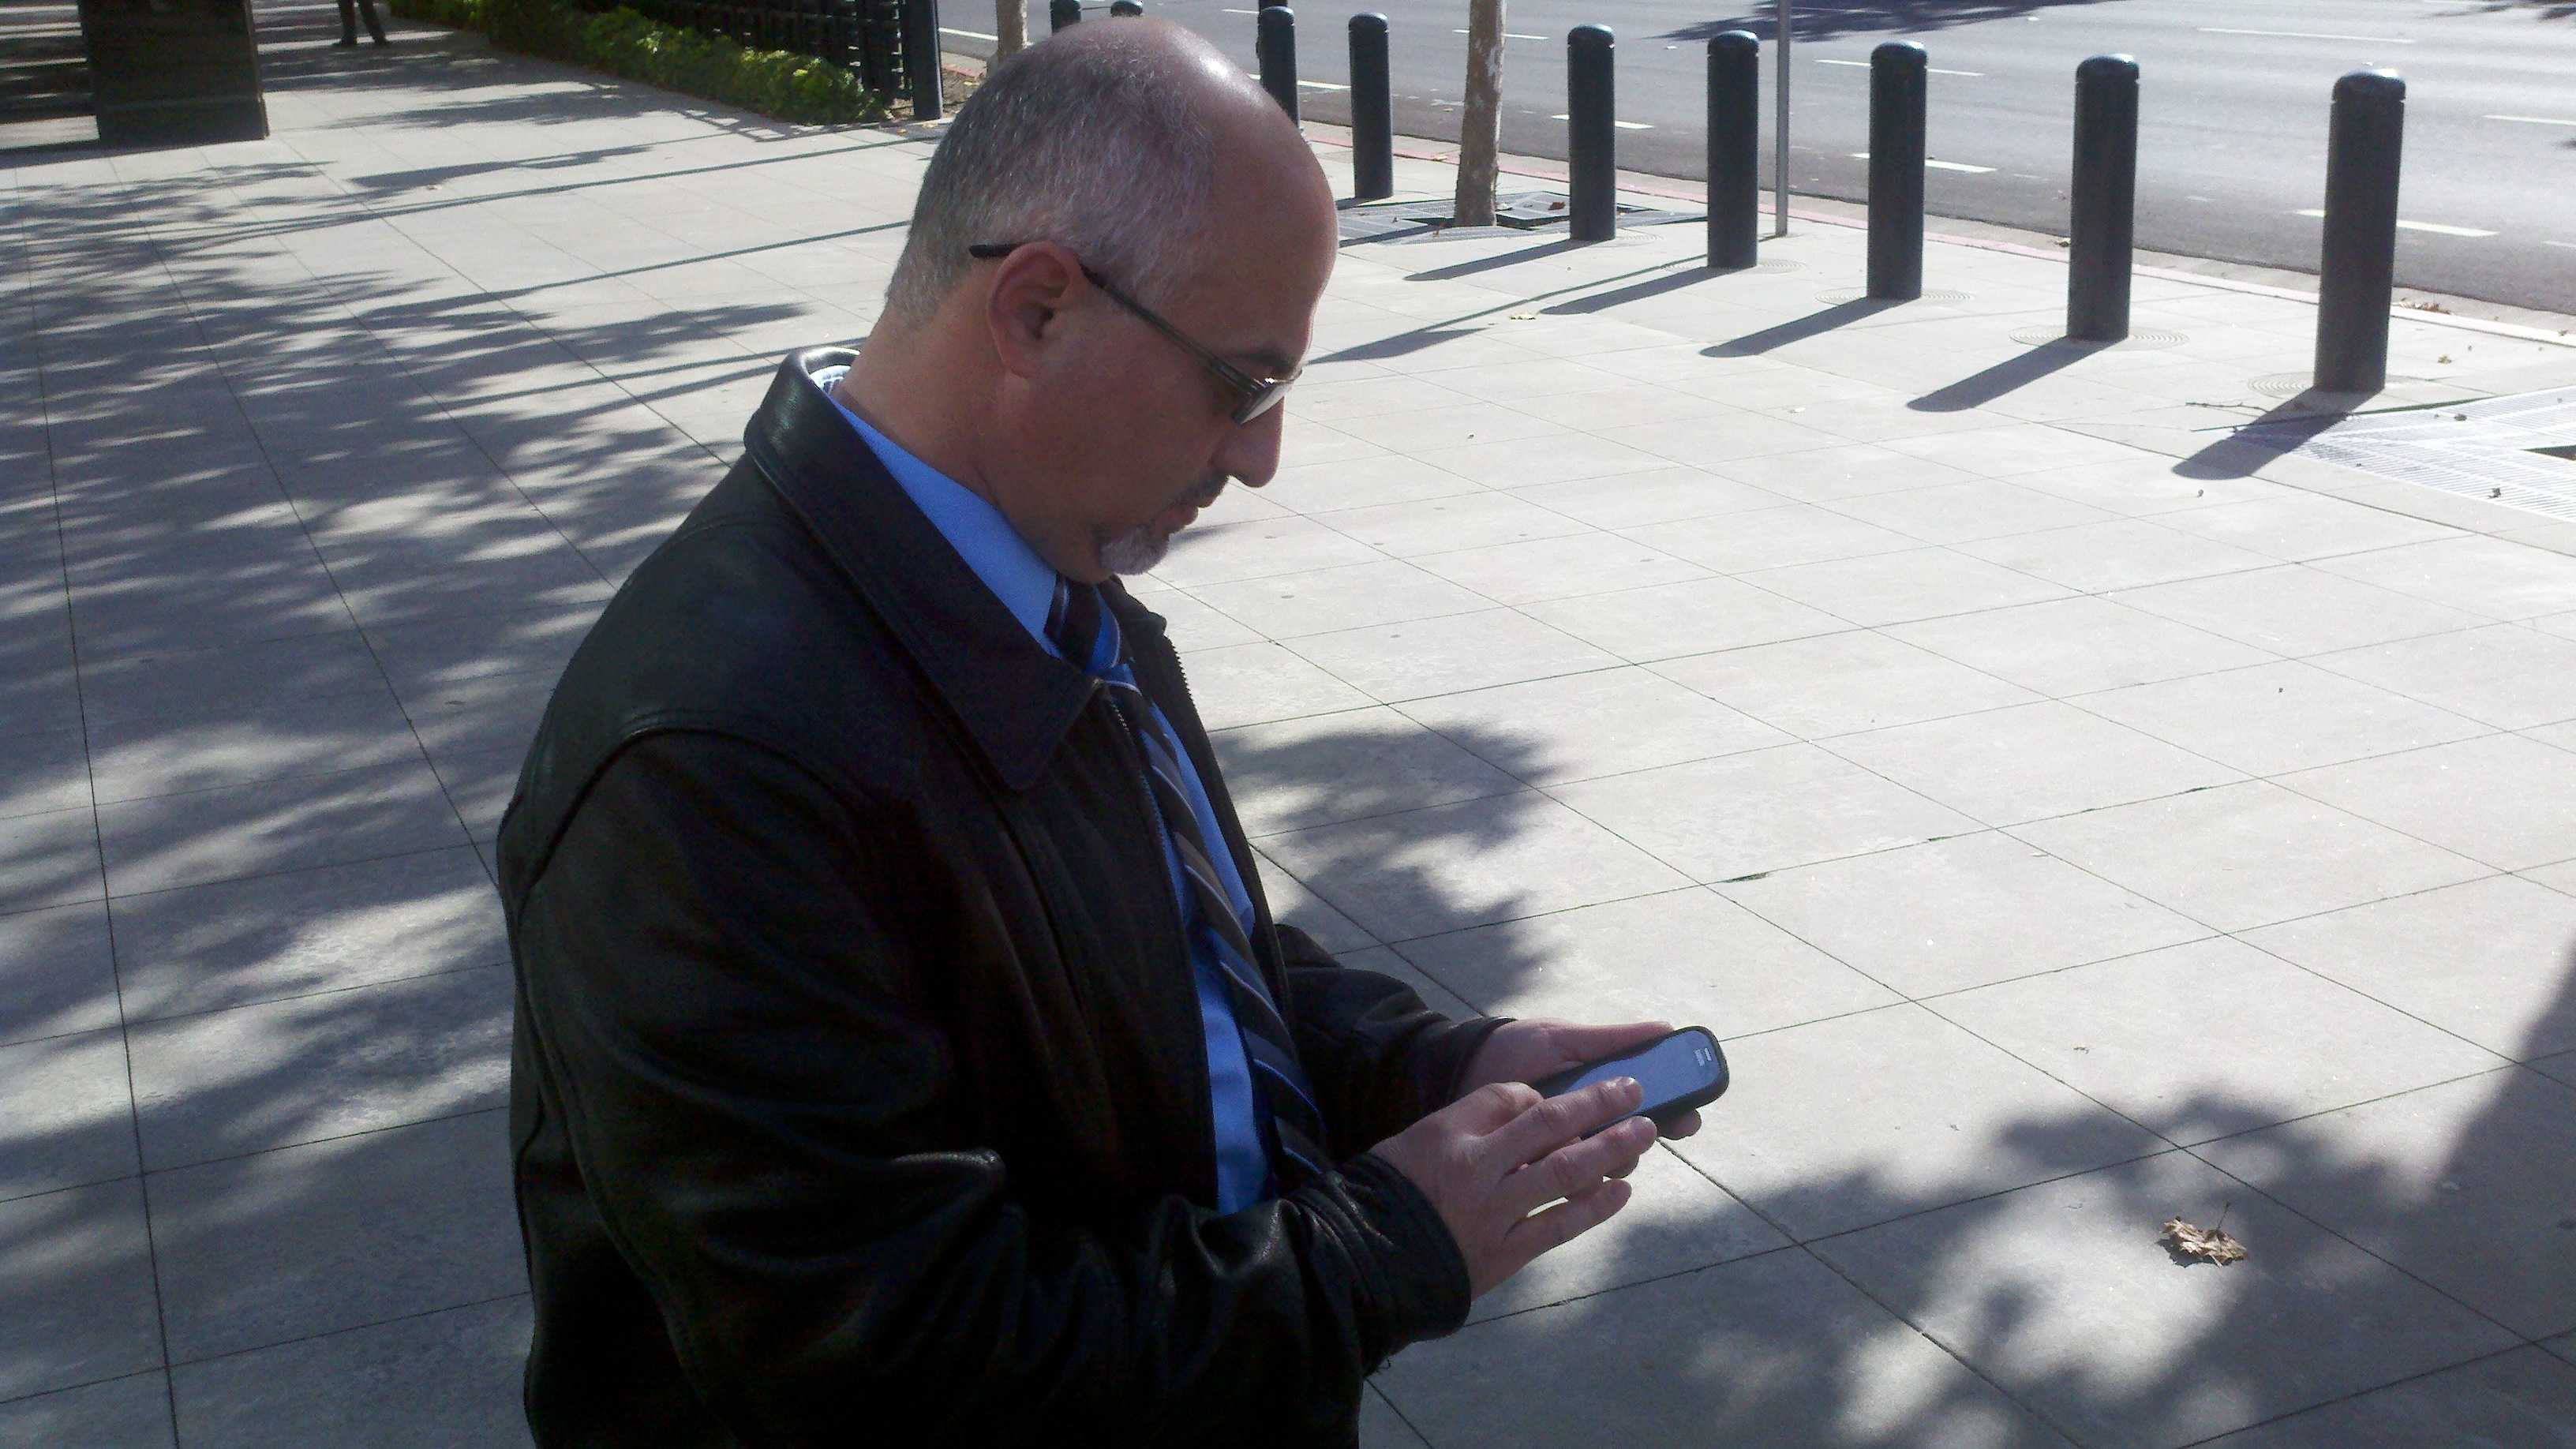 Adeeb Alzanoon checks his smartphone for the latest developments in Gaza.